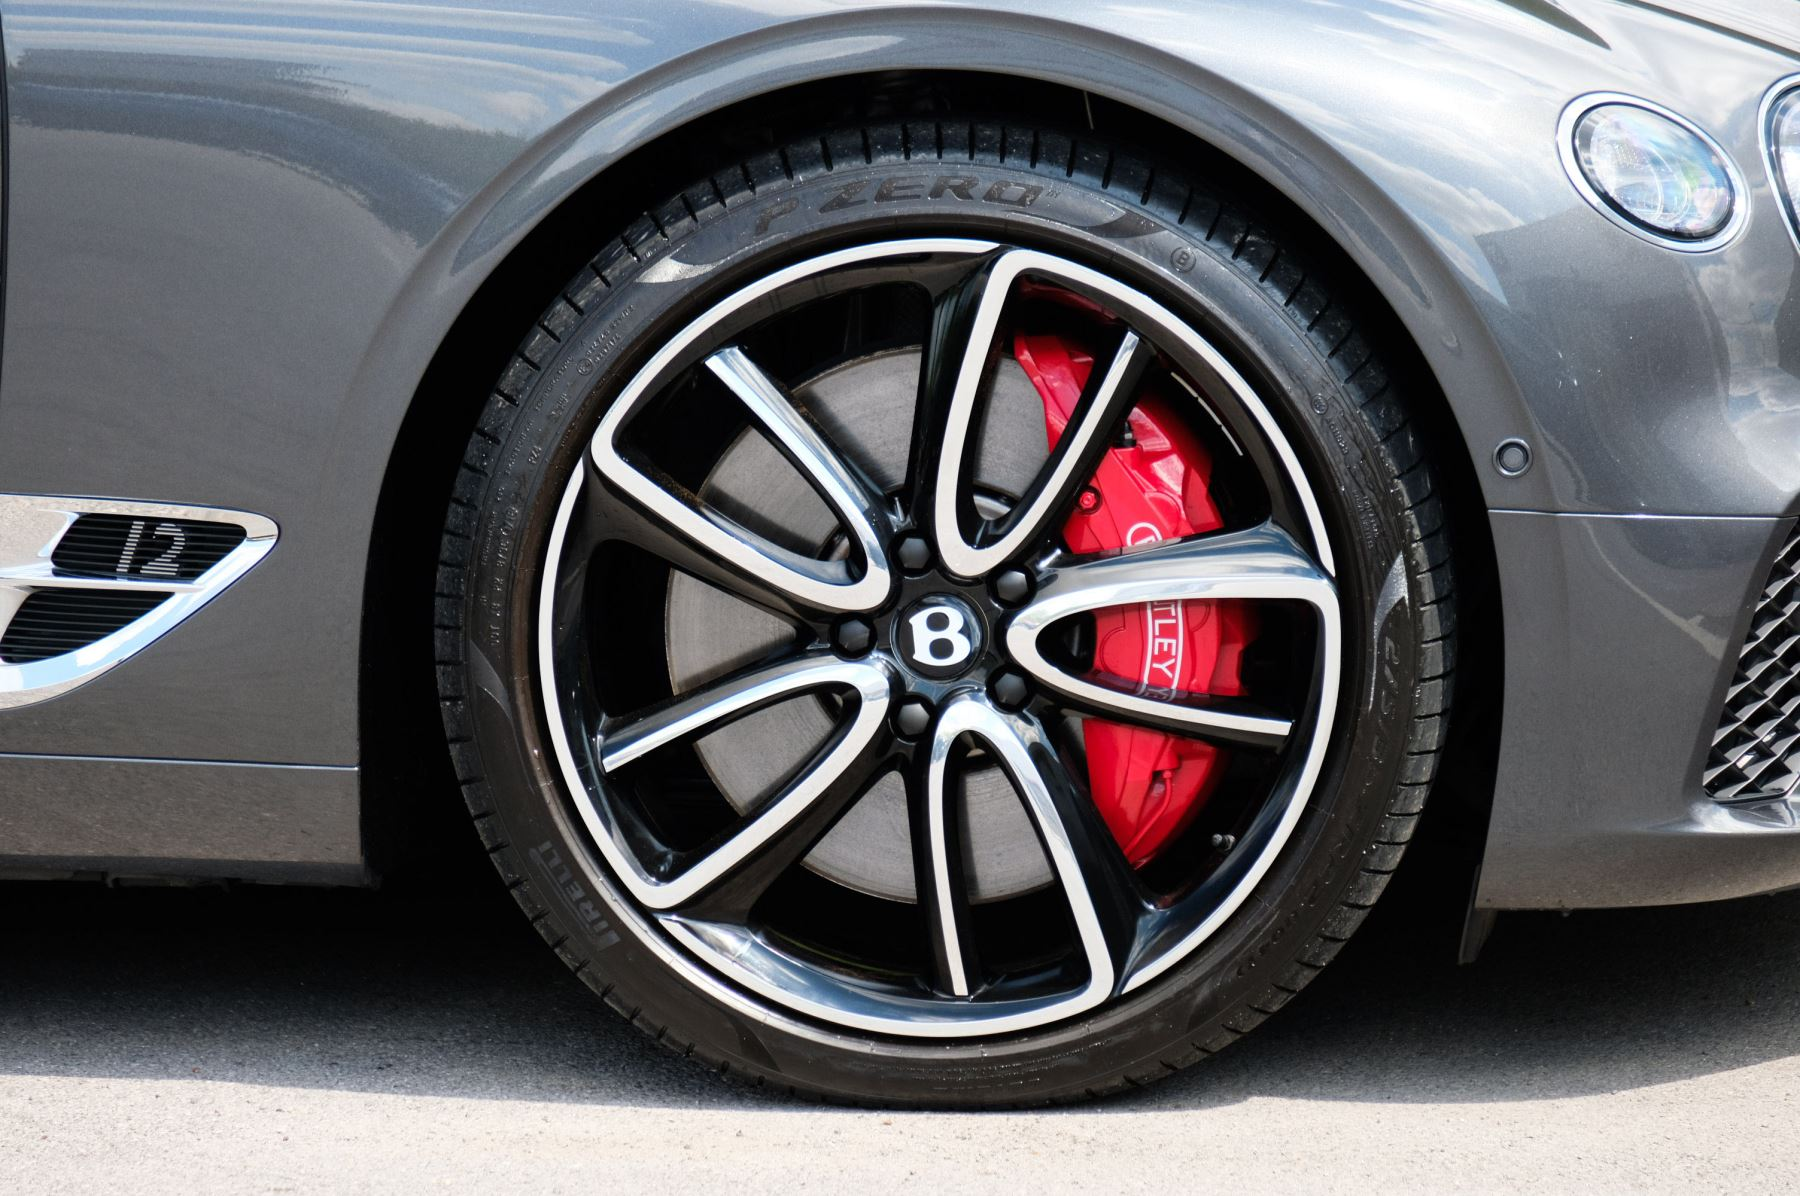 Bentley Continental GT 6.0 W12 - Mulliner Driving Specification image 8